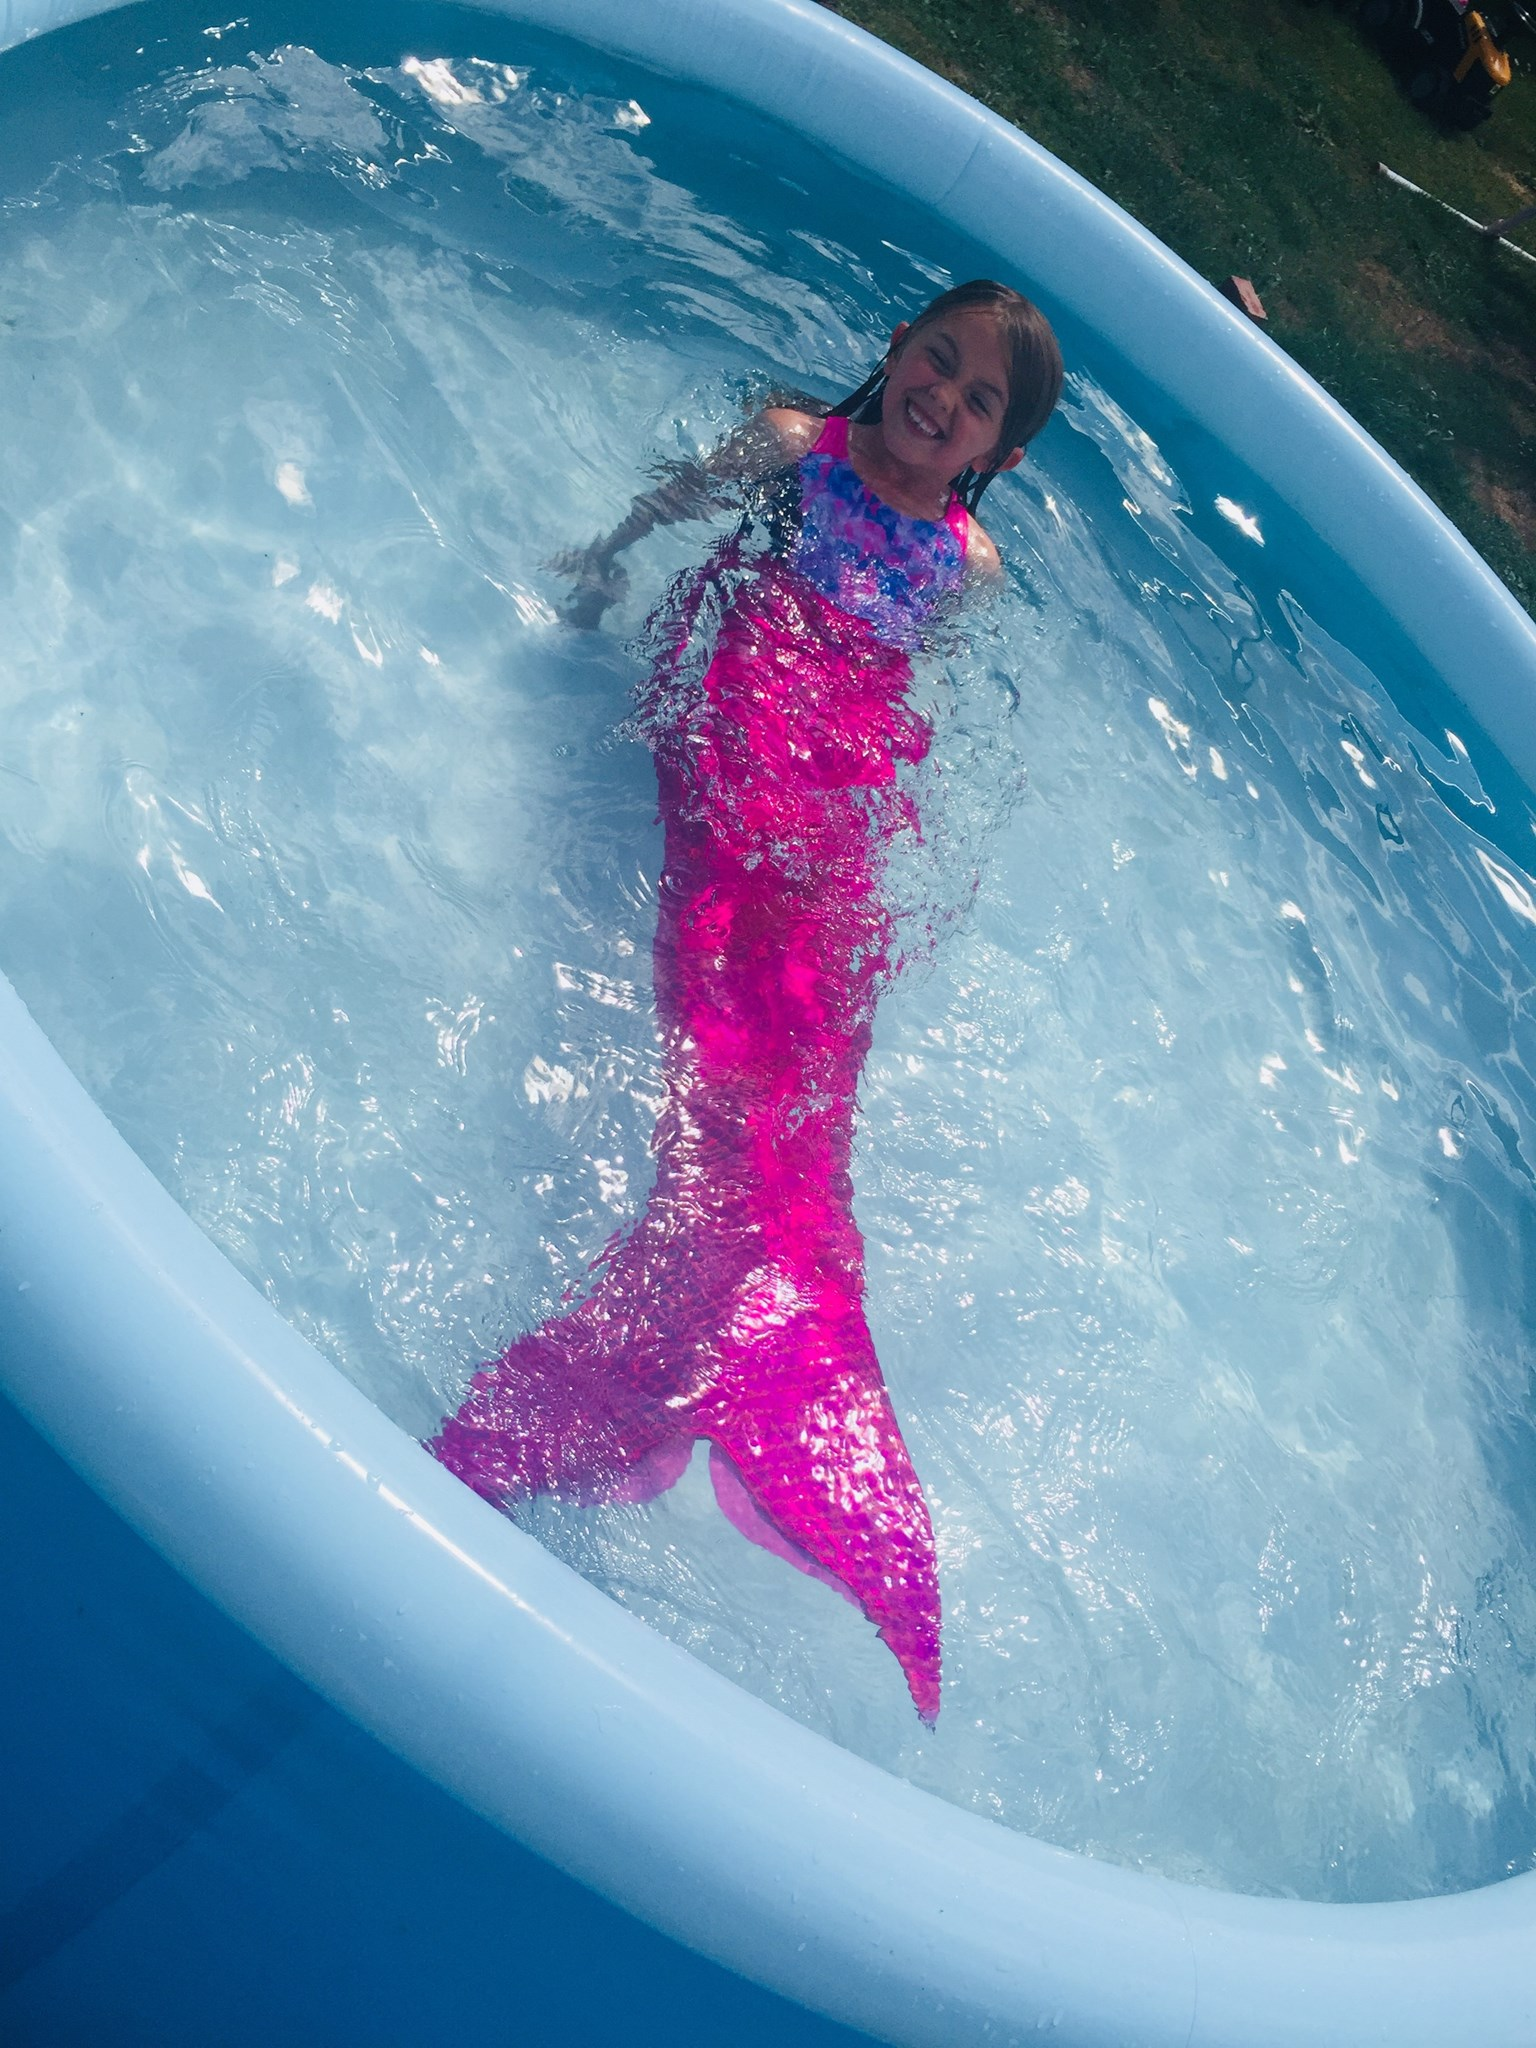 We found a mermaid xxx